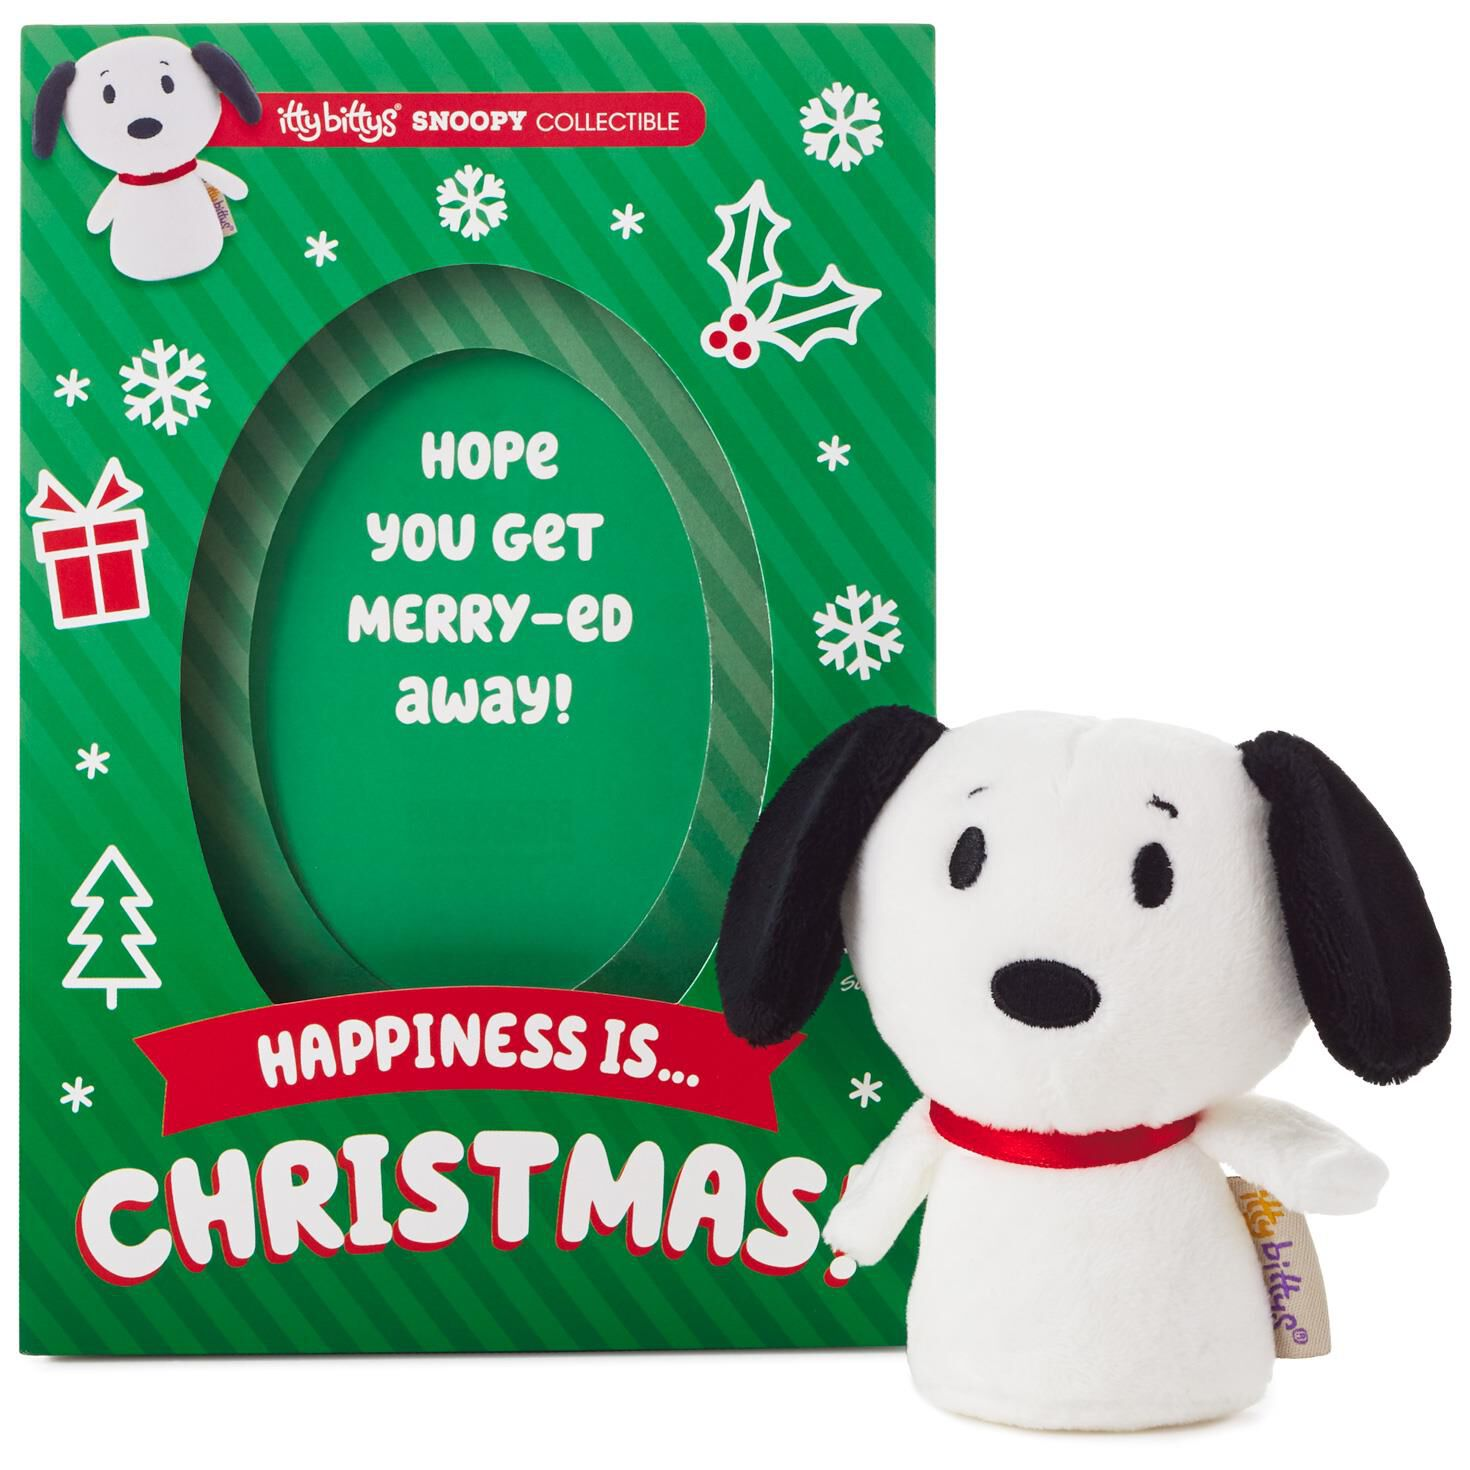 Snoopys Christmas.Itty Bittys Peanuts Snoopy Christmas Card With Stuffed Animal